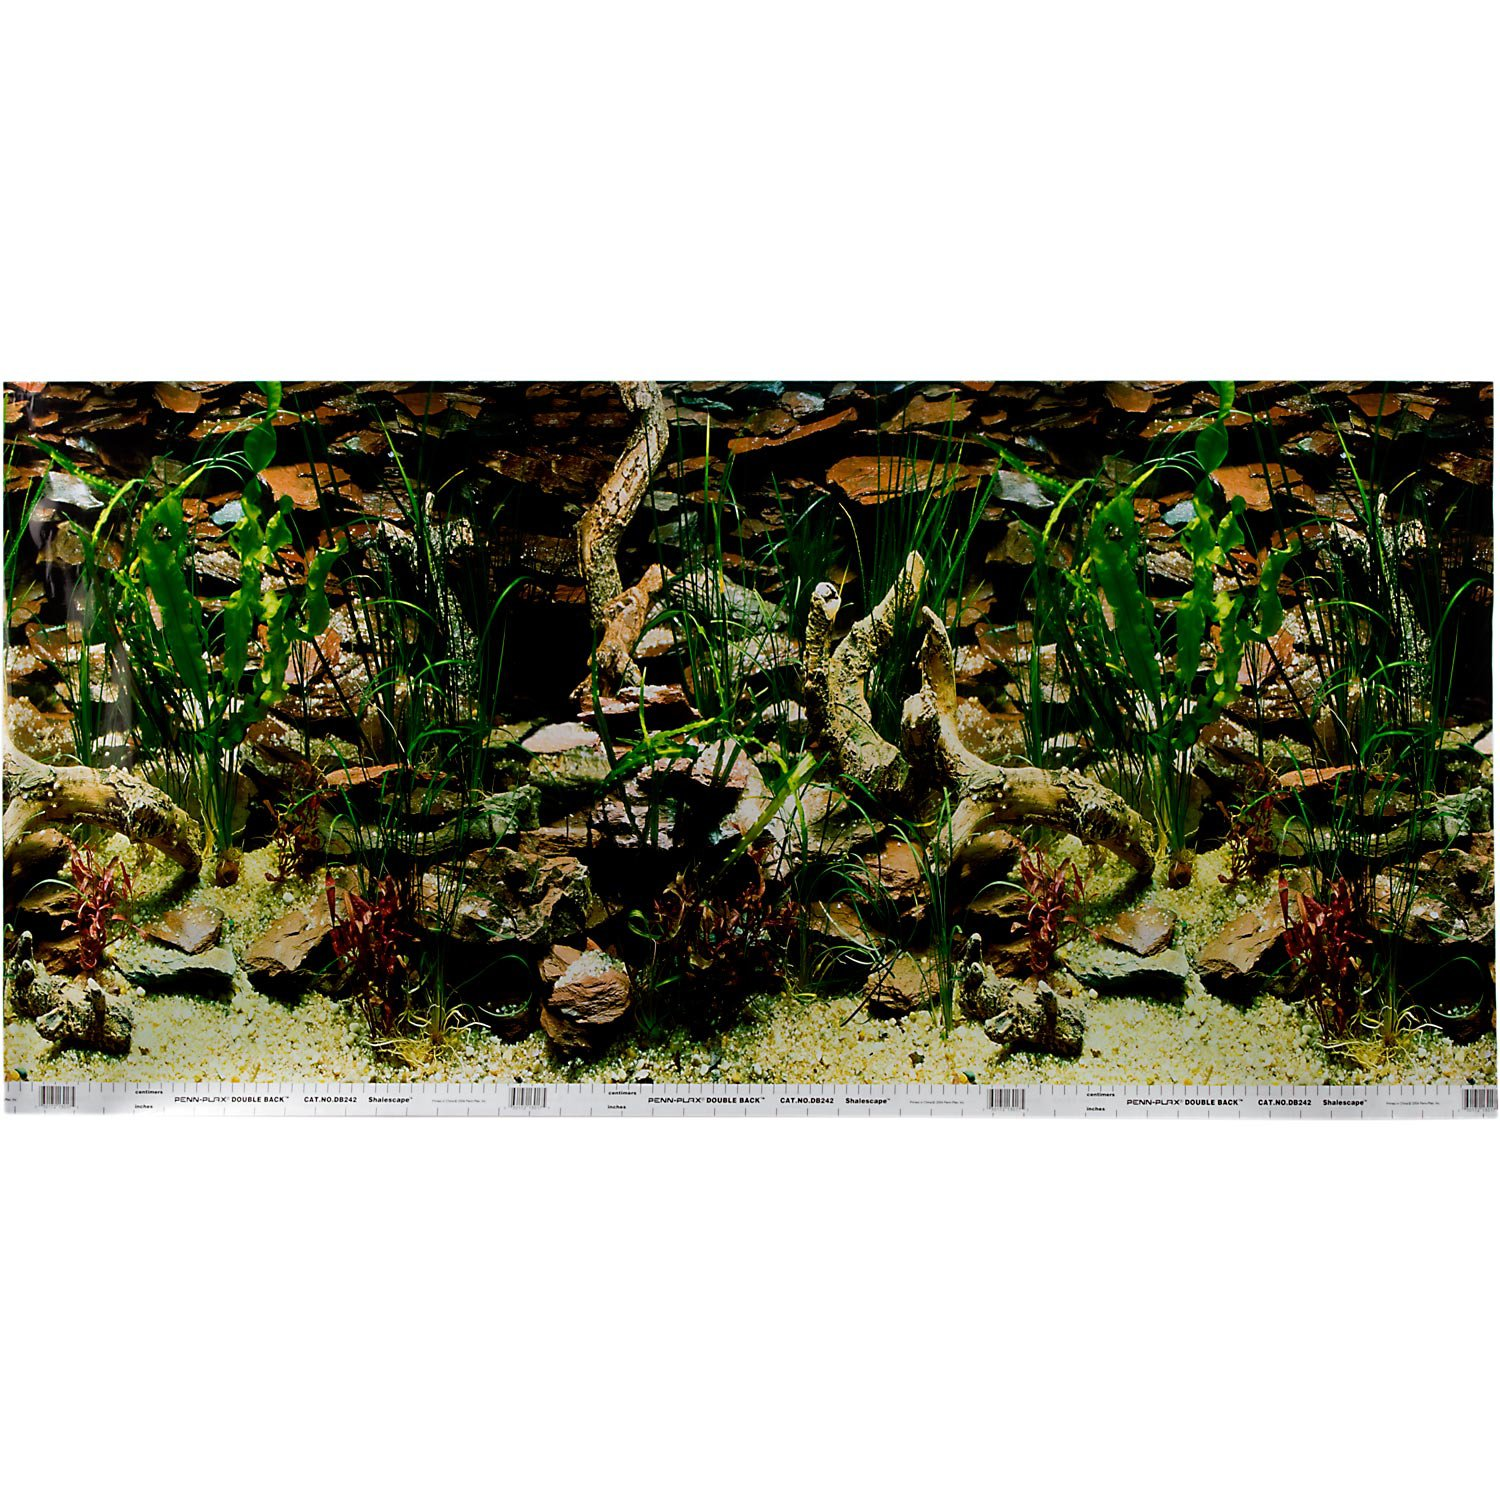 Aquarium Unterschrank 30 X 30 Petco Double Sided Shale Aquarium Background Petco